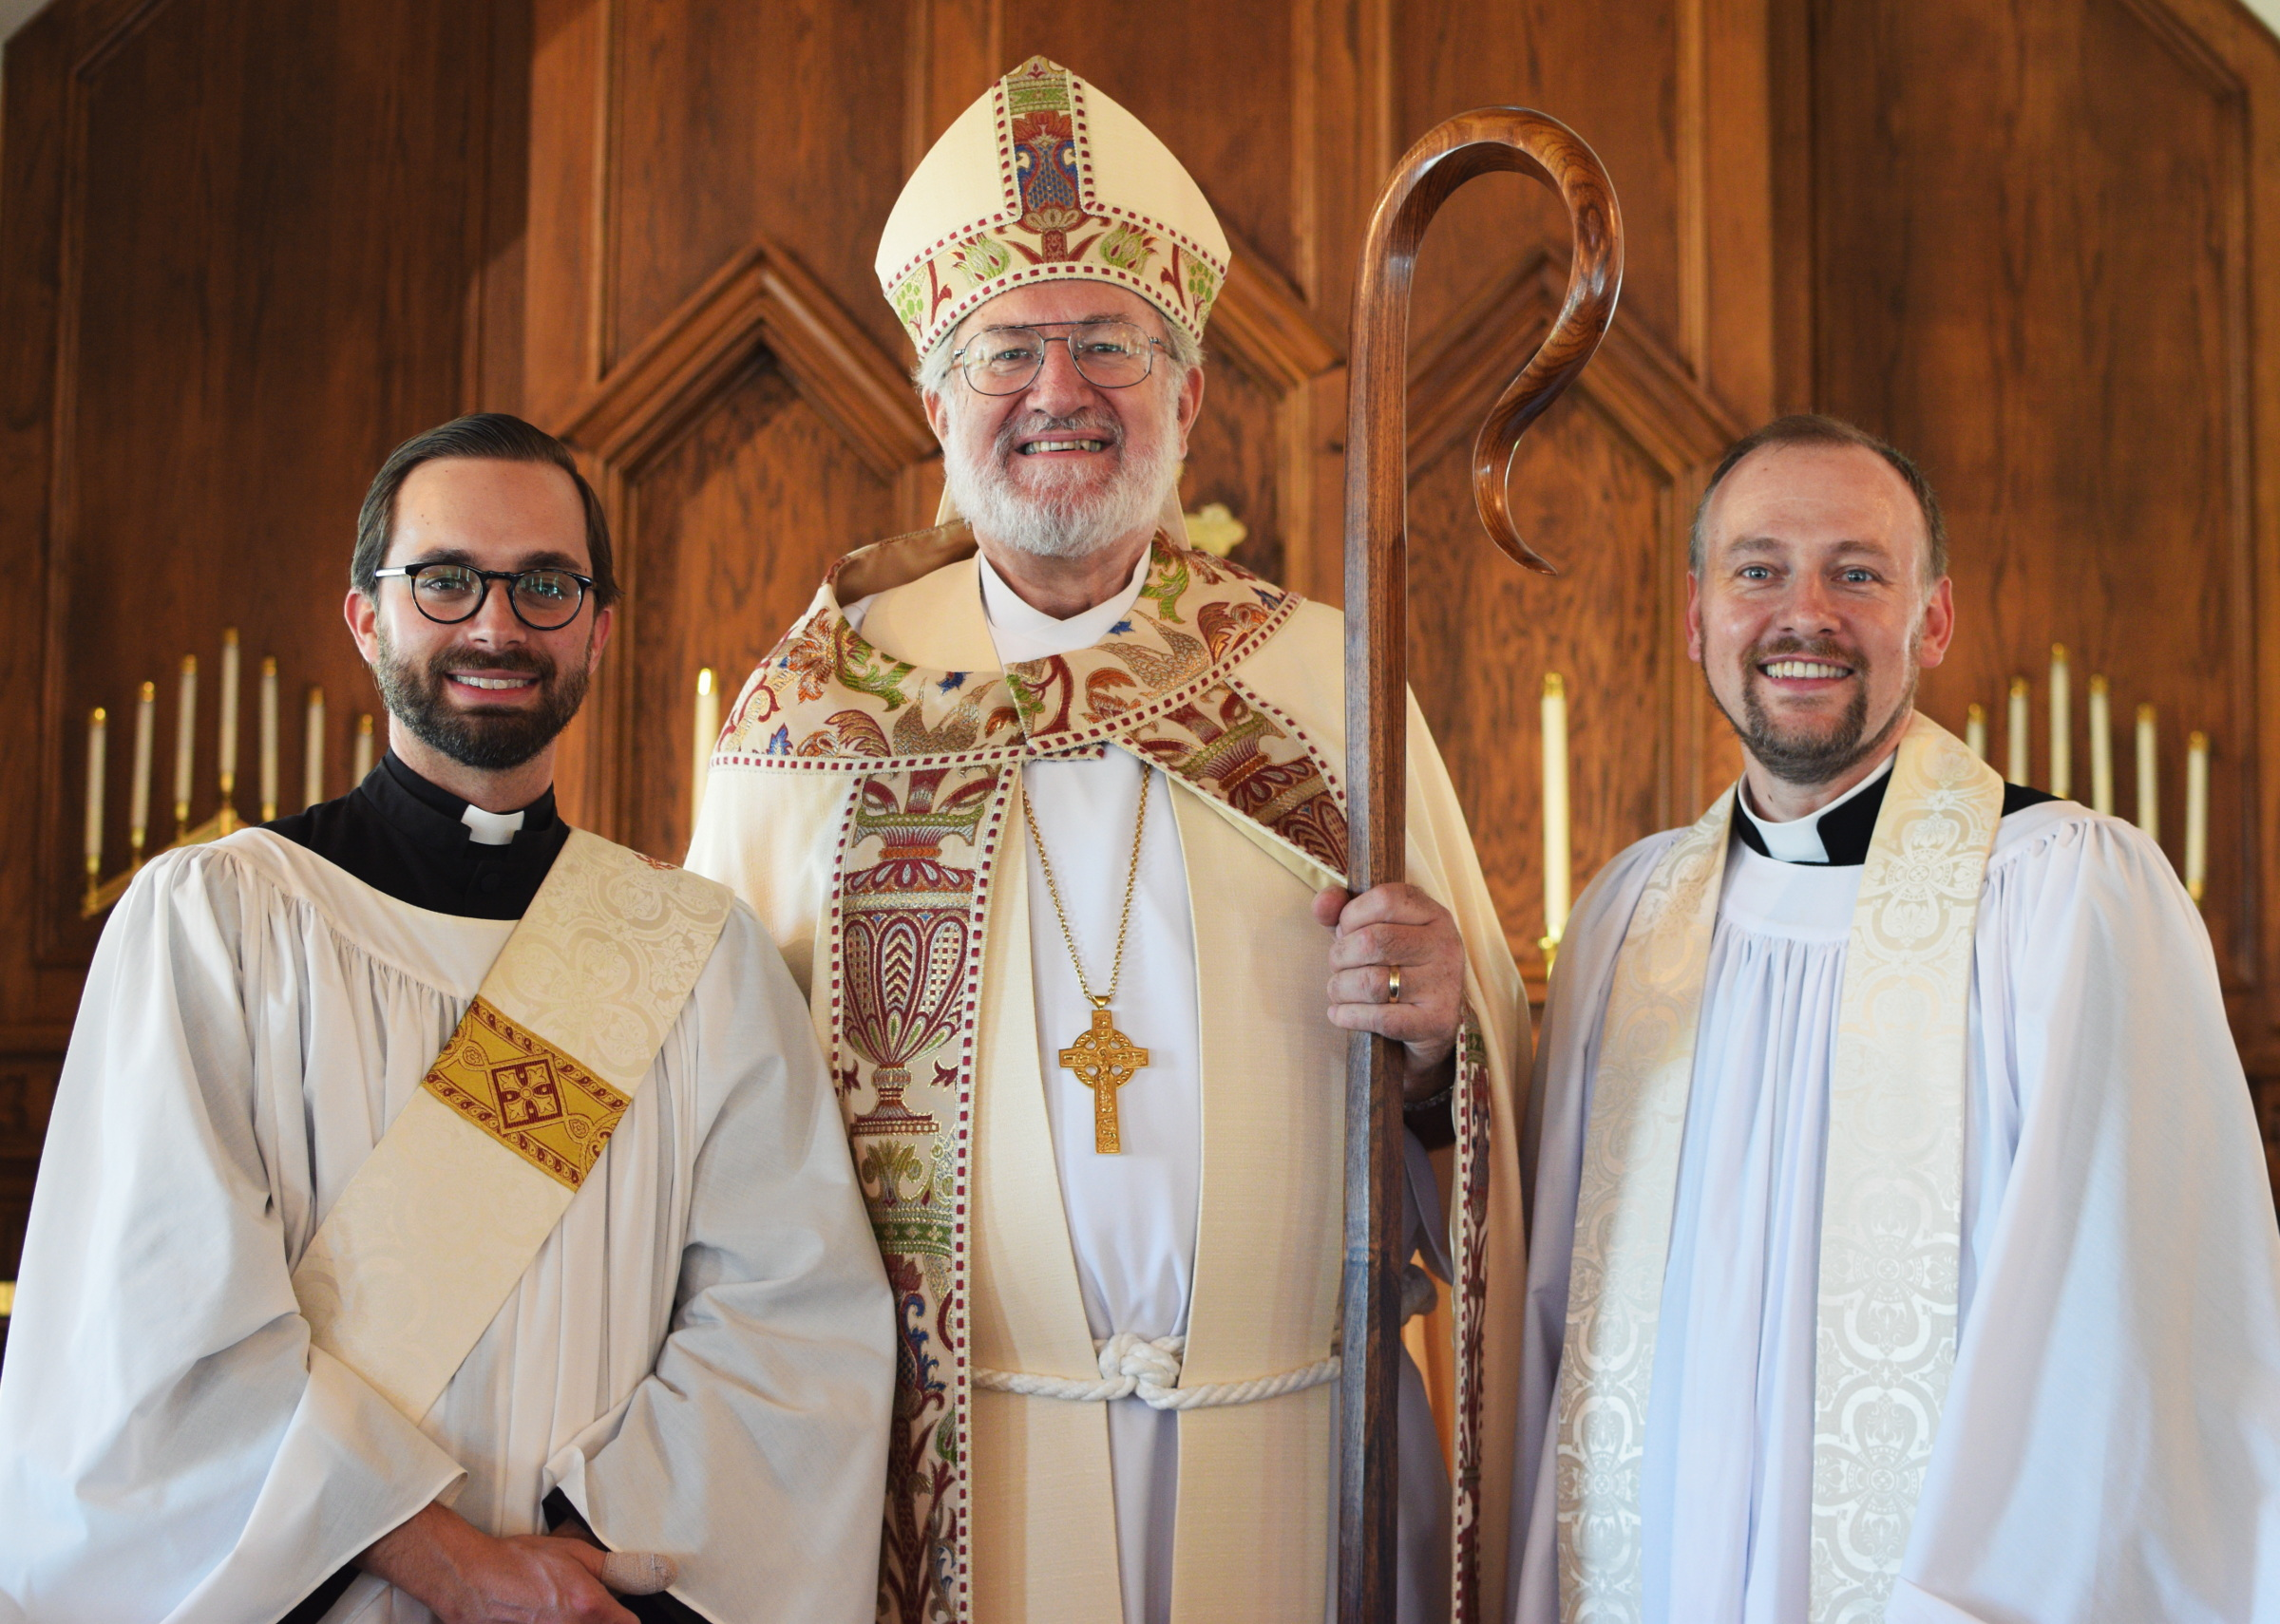 Eric Parkers ordination to diaconate